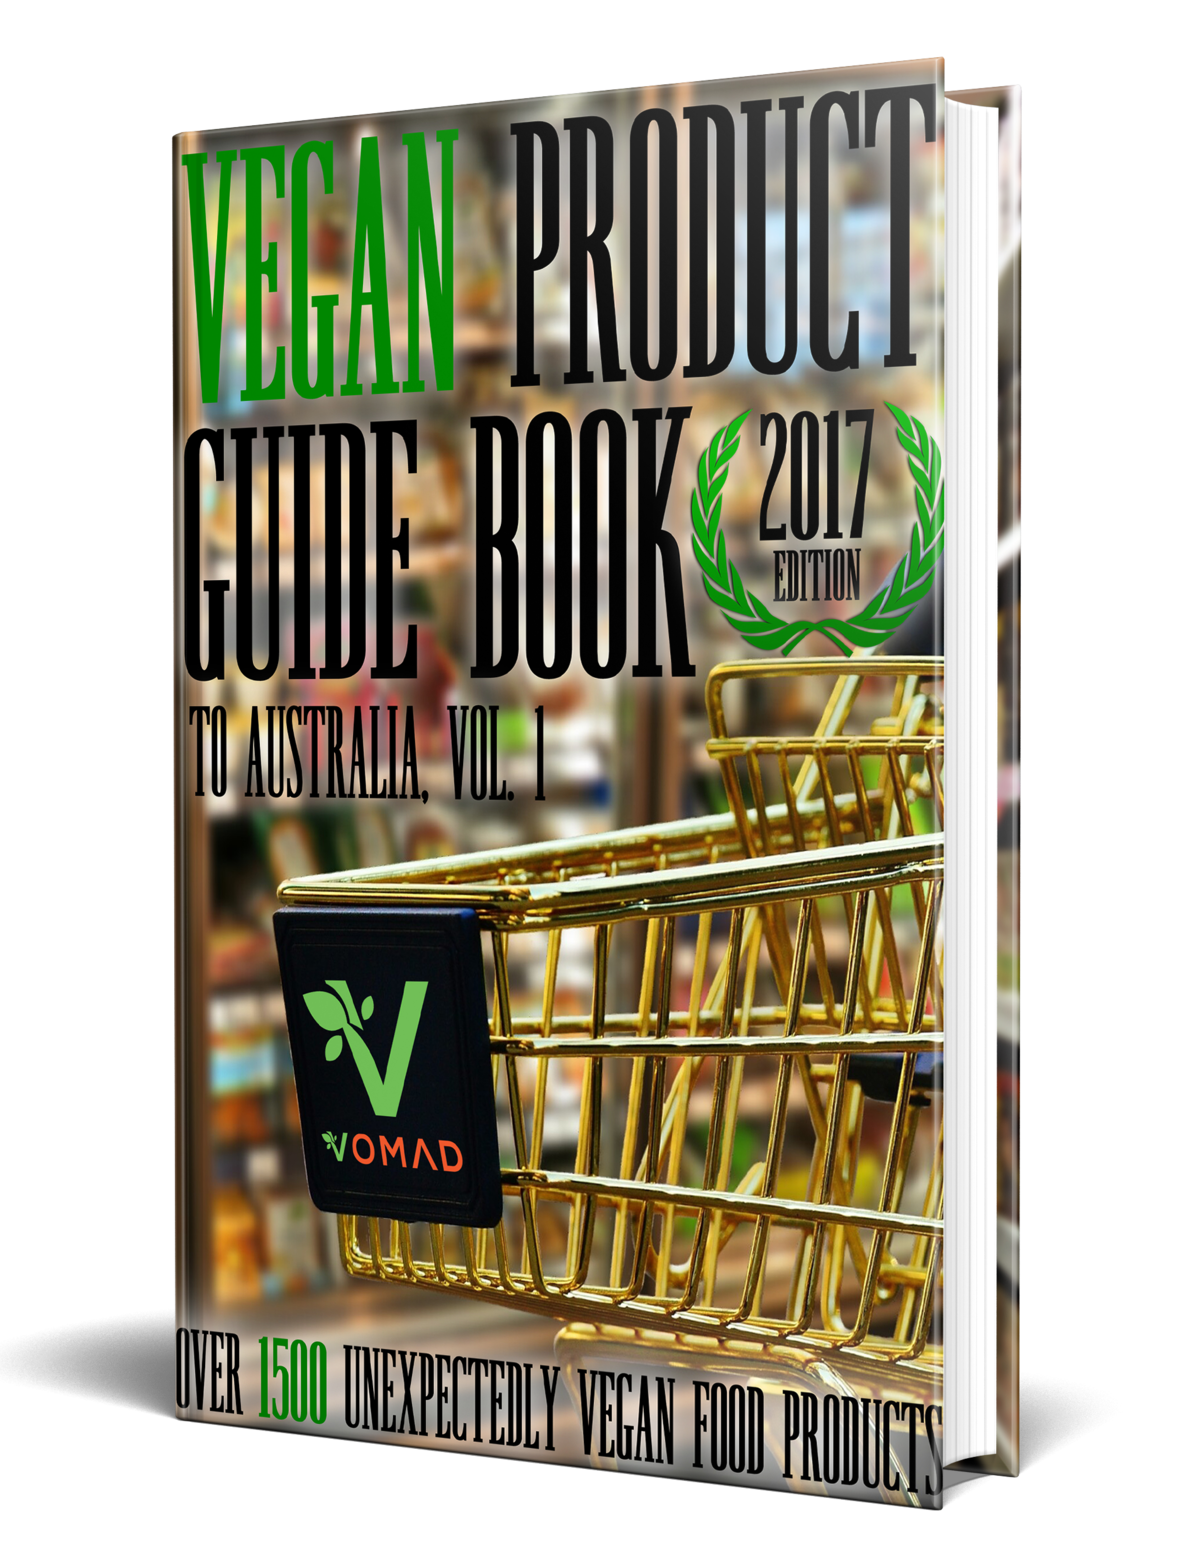 Vegan Product Guide Book